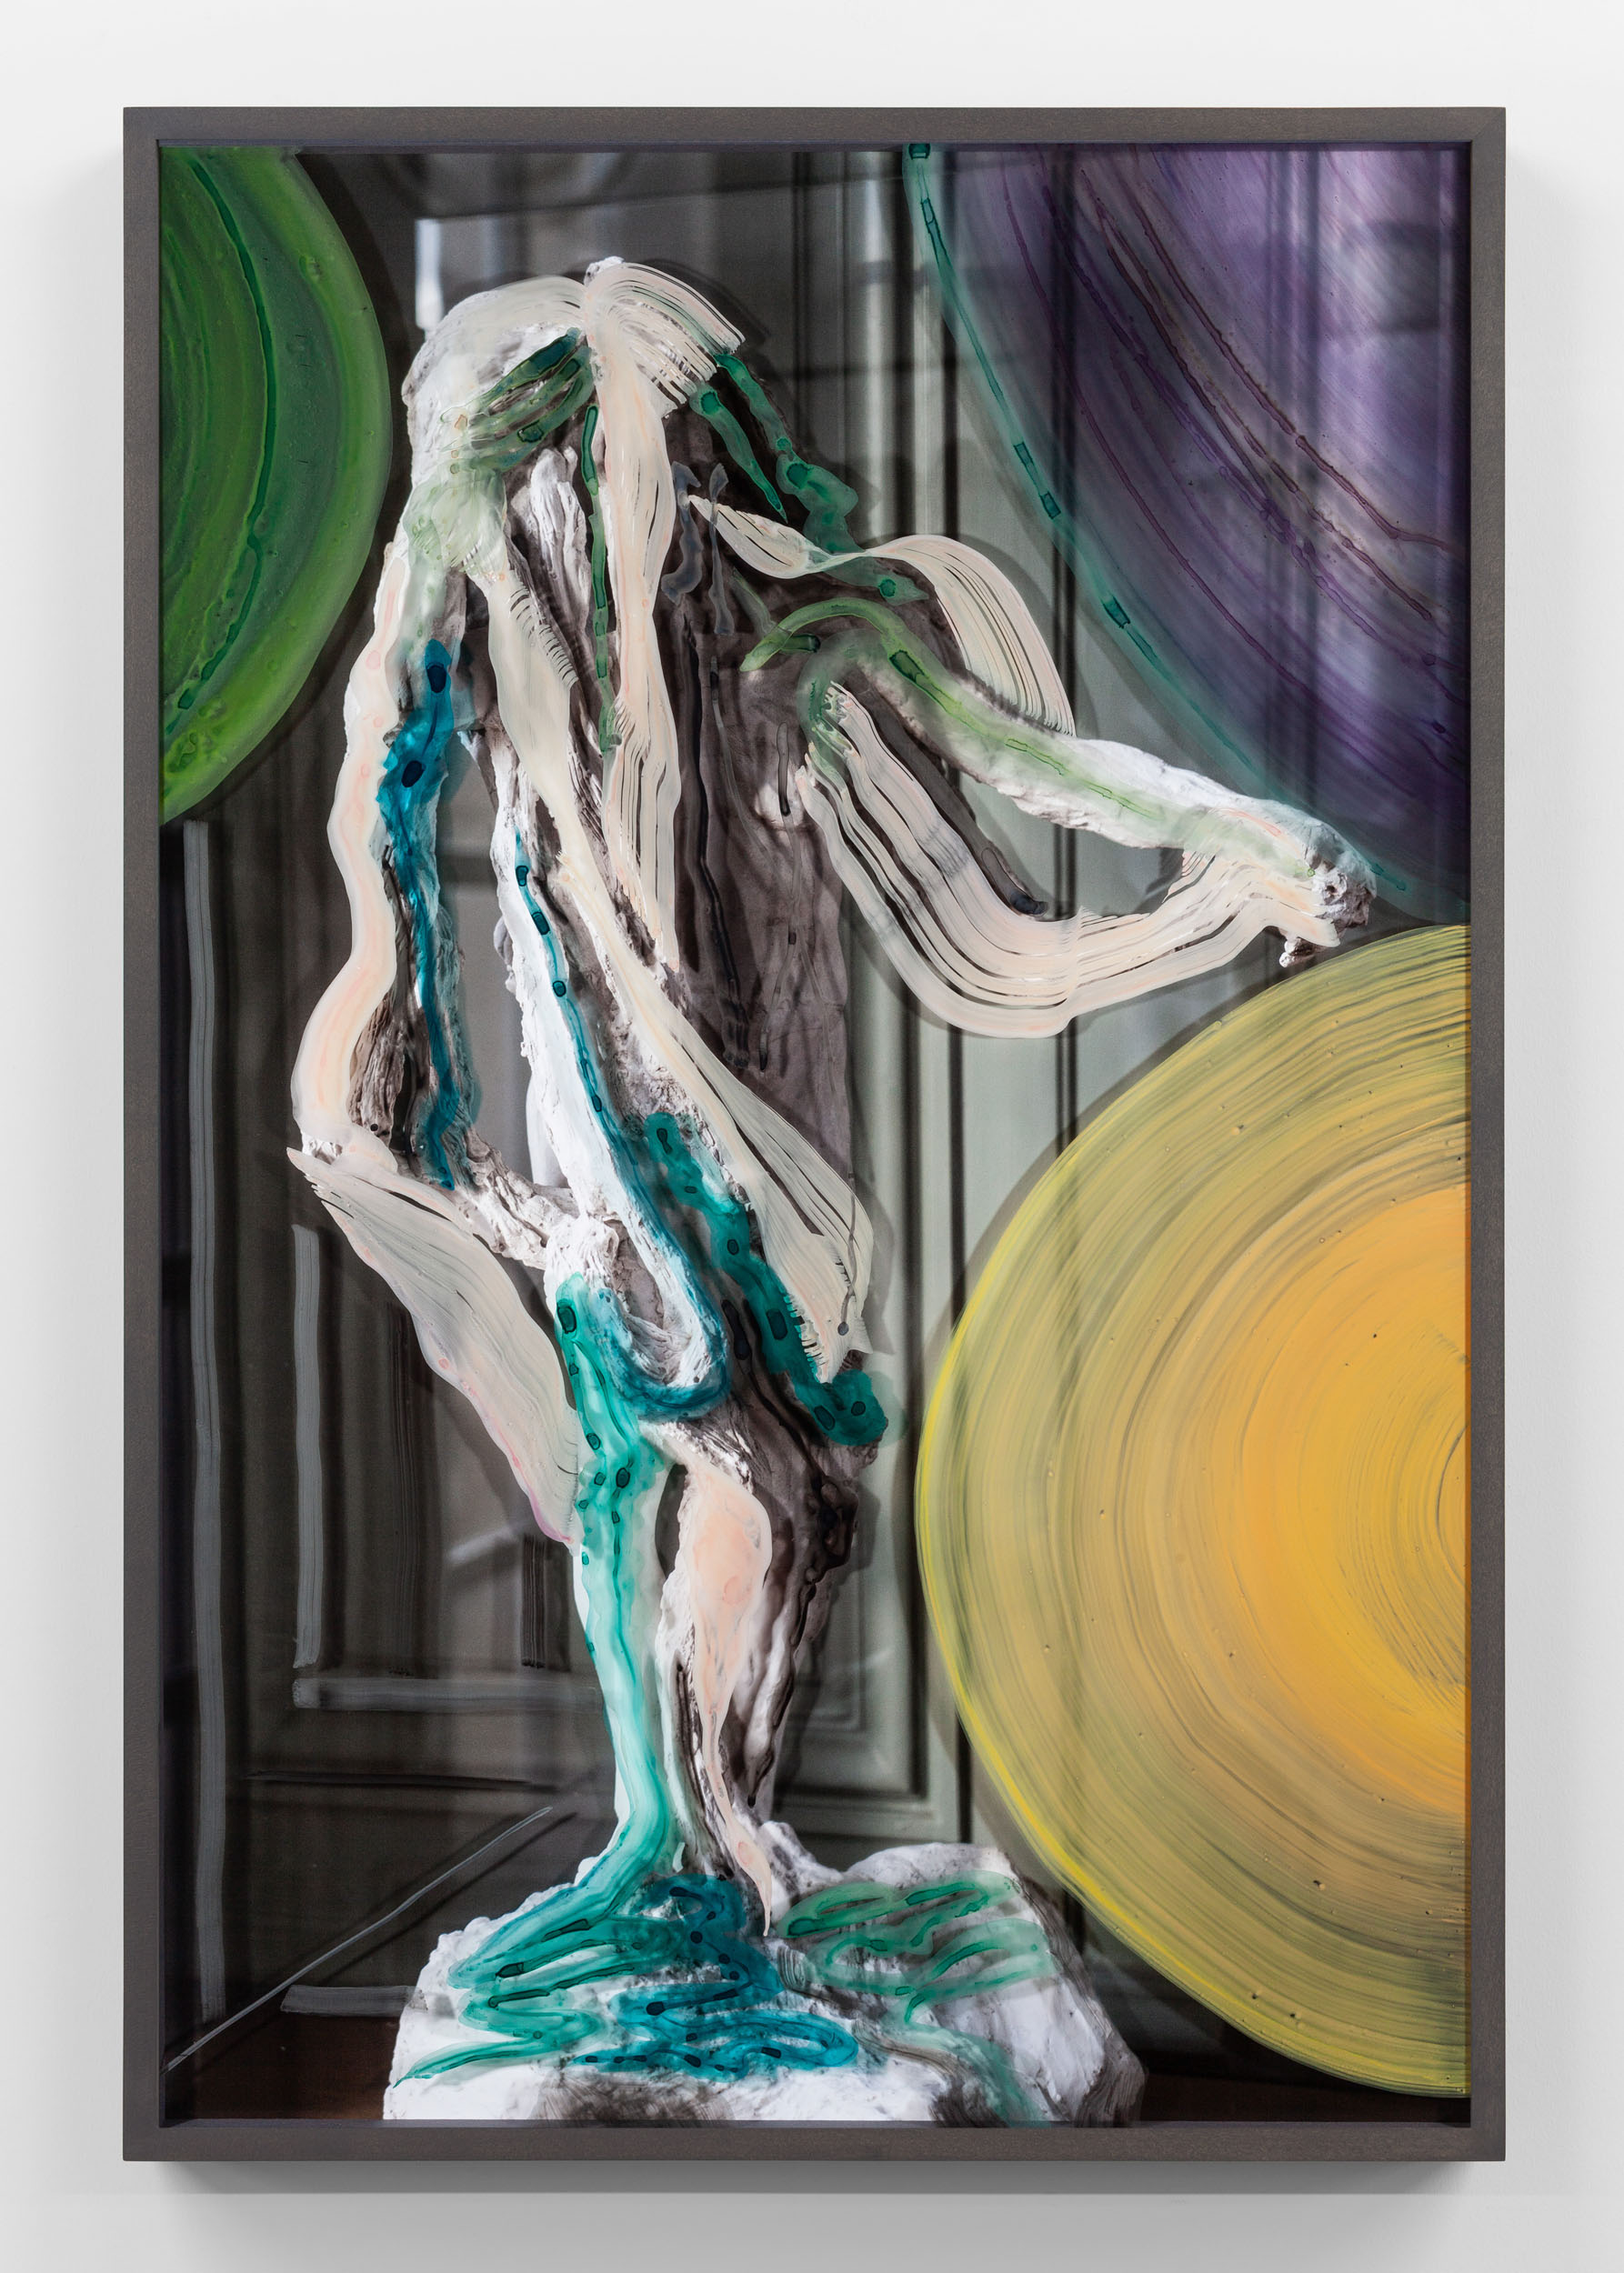 Unitlted (Woman with rags and yellow and green orbs) 2019, hand-painted museum acrylic over archival pigment print 91.5 x 61 cm / 36 x 24 in. Unique work